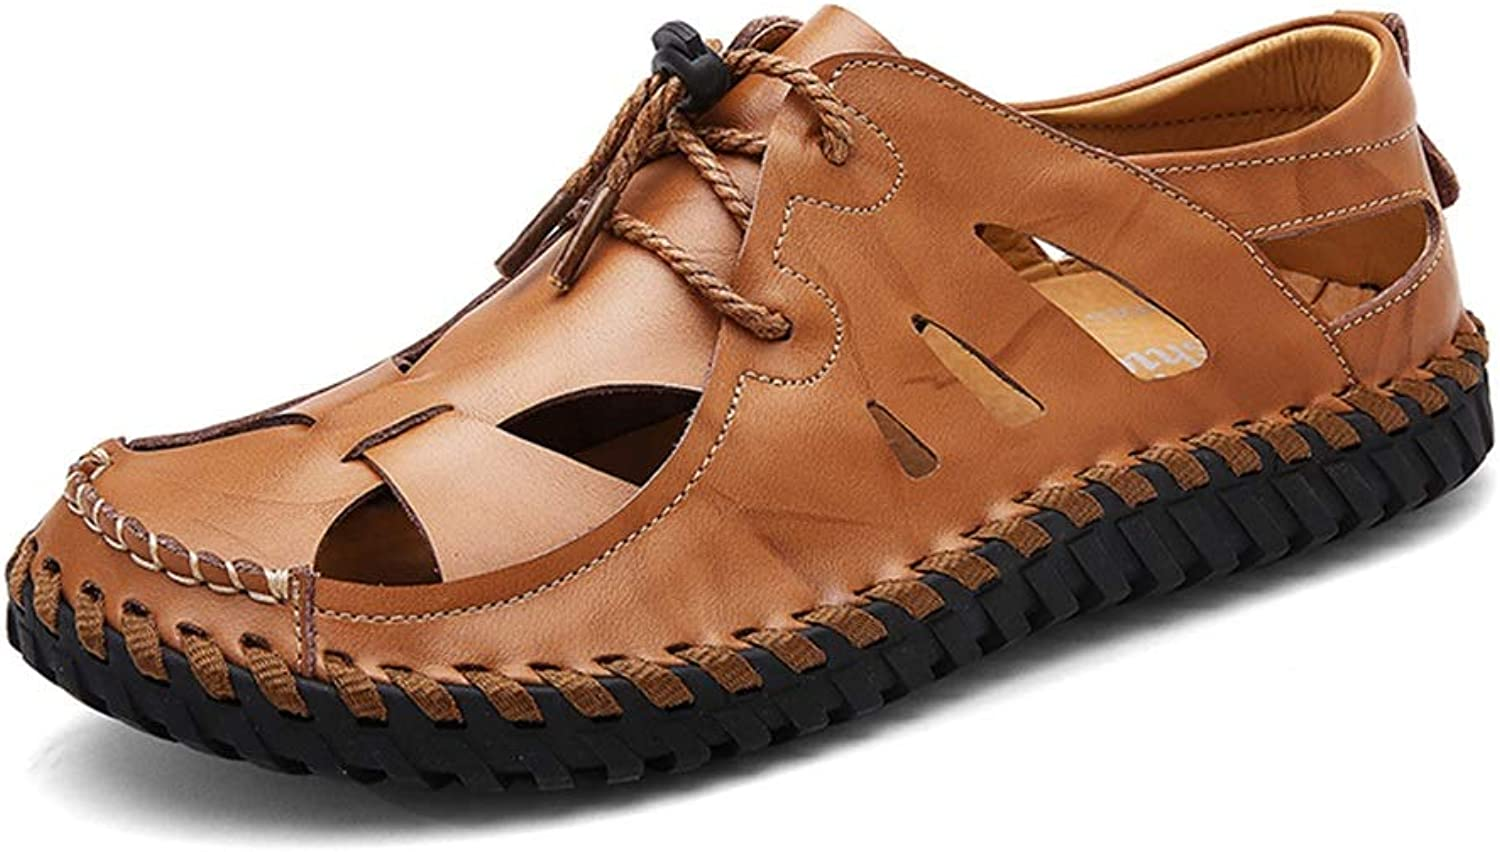 ChengxiO Sandals Men's Leather Tide shoes 2019 New Summer Korean Version Of The National Wind Casual shoes Men's Leather Sandals Soft Cow Leather (color   Brown, Size   265mm)